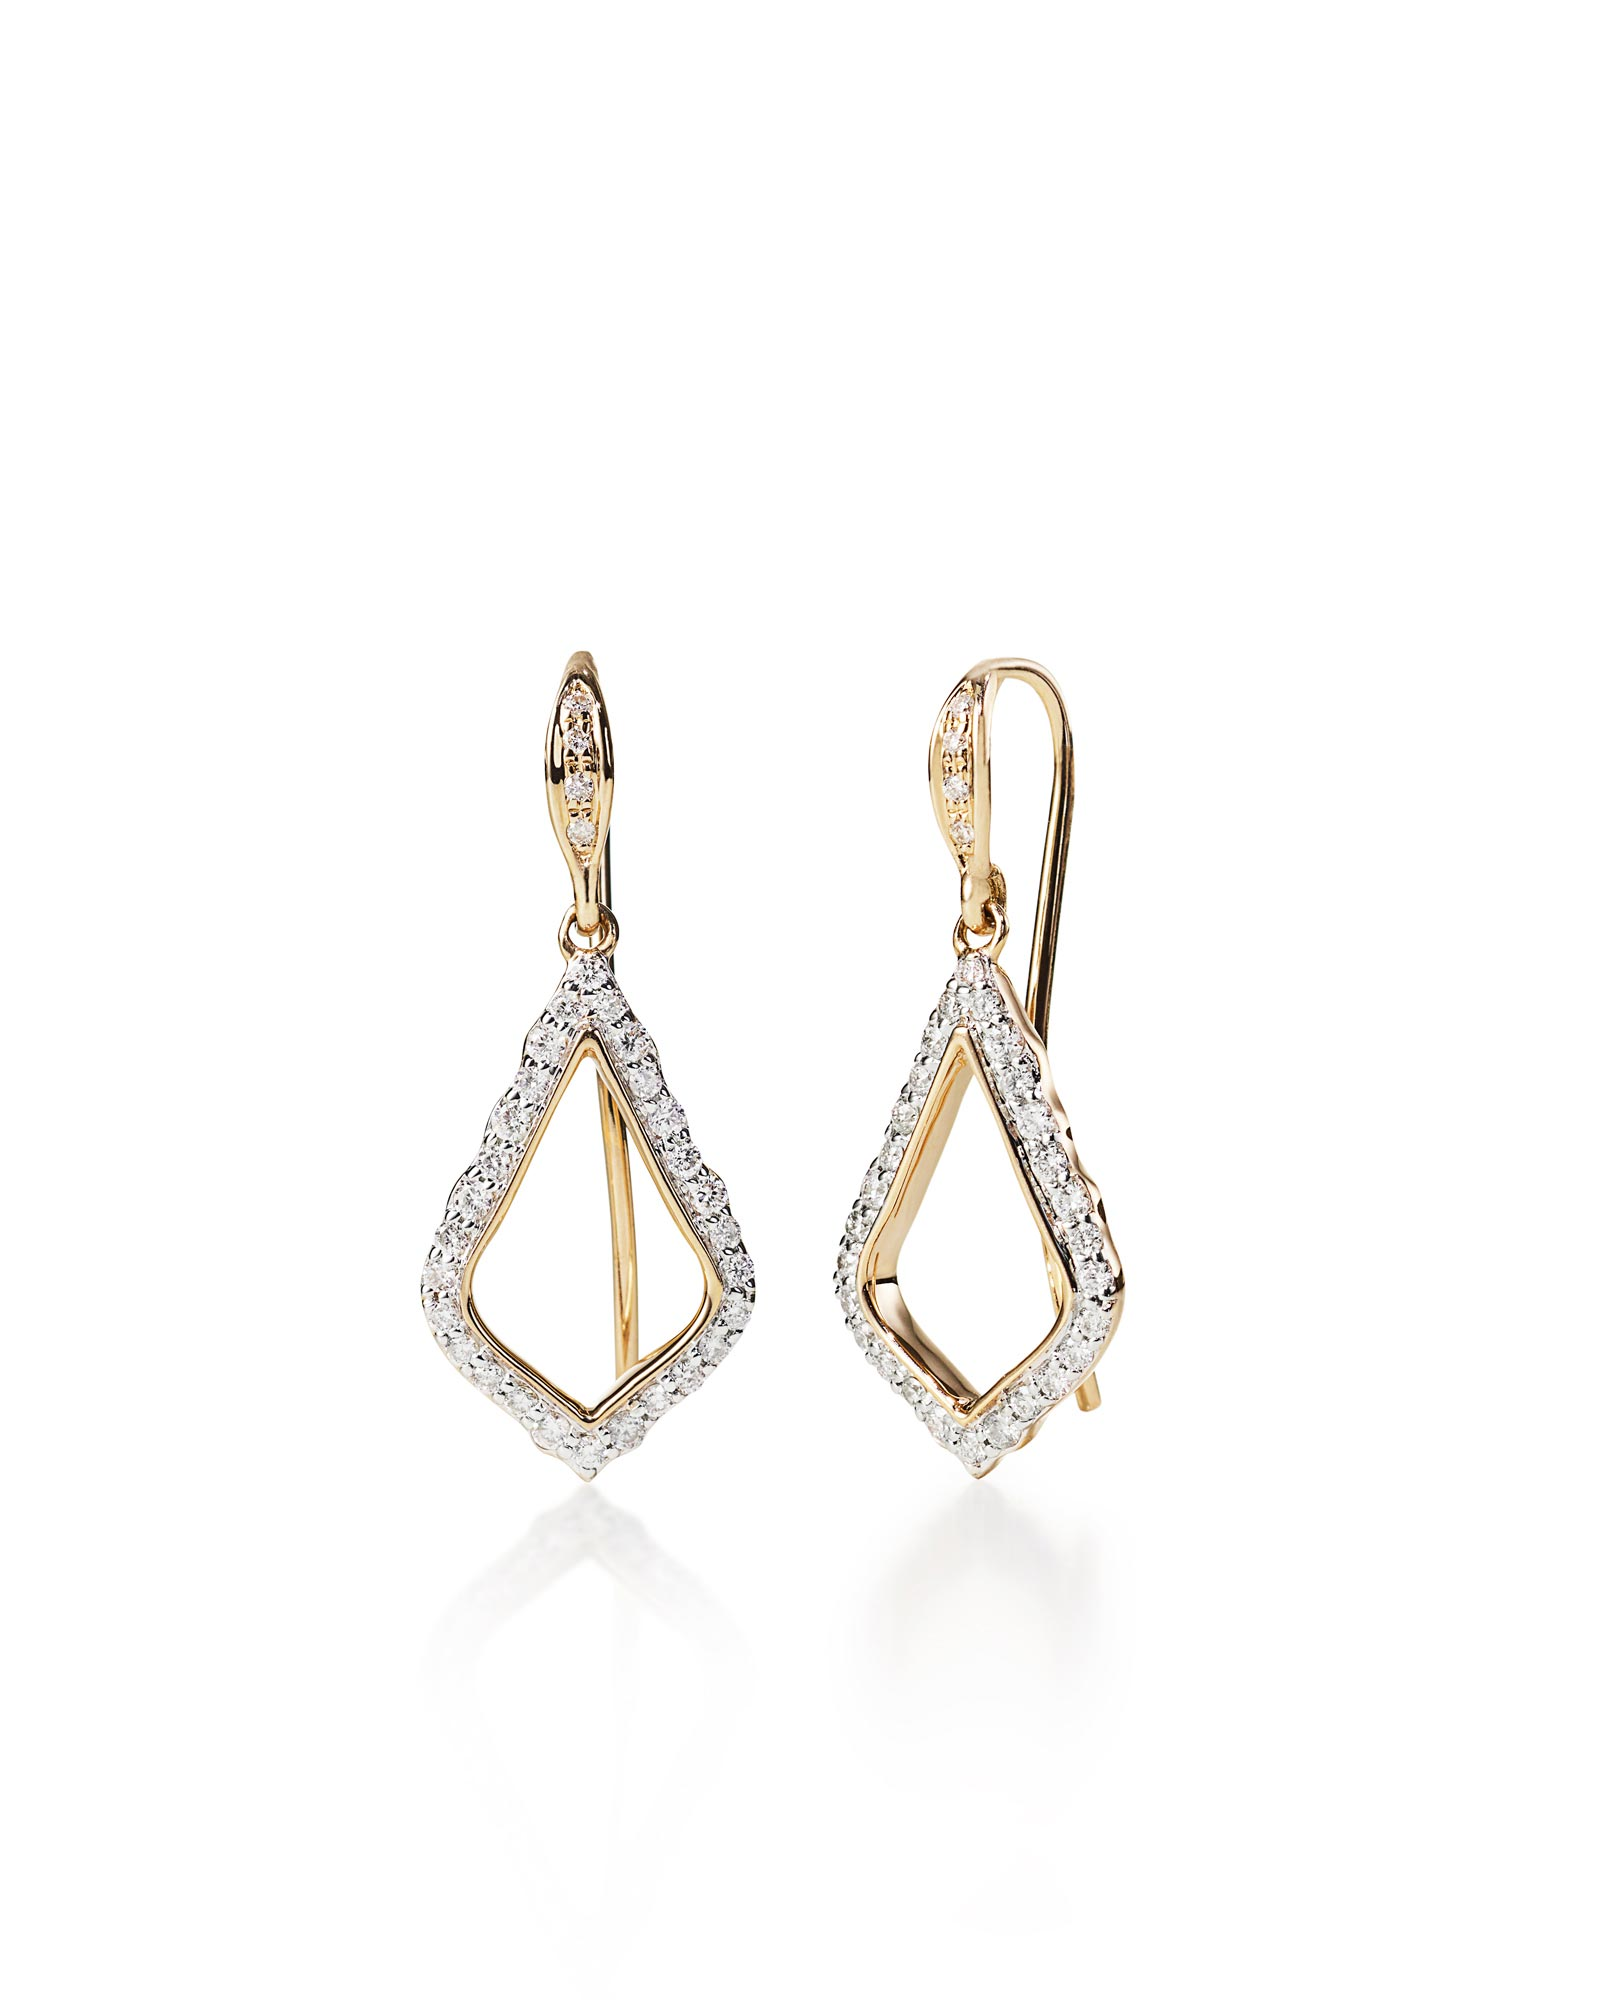 Liliana Drop Earrings in Pave Diamond and 14k Yellow Gold